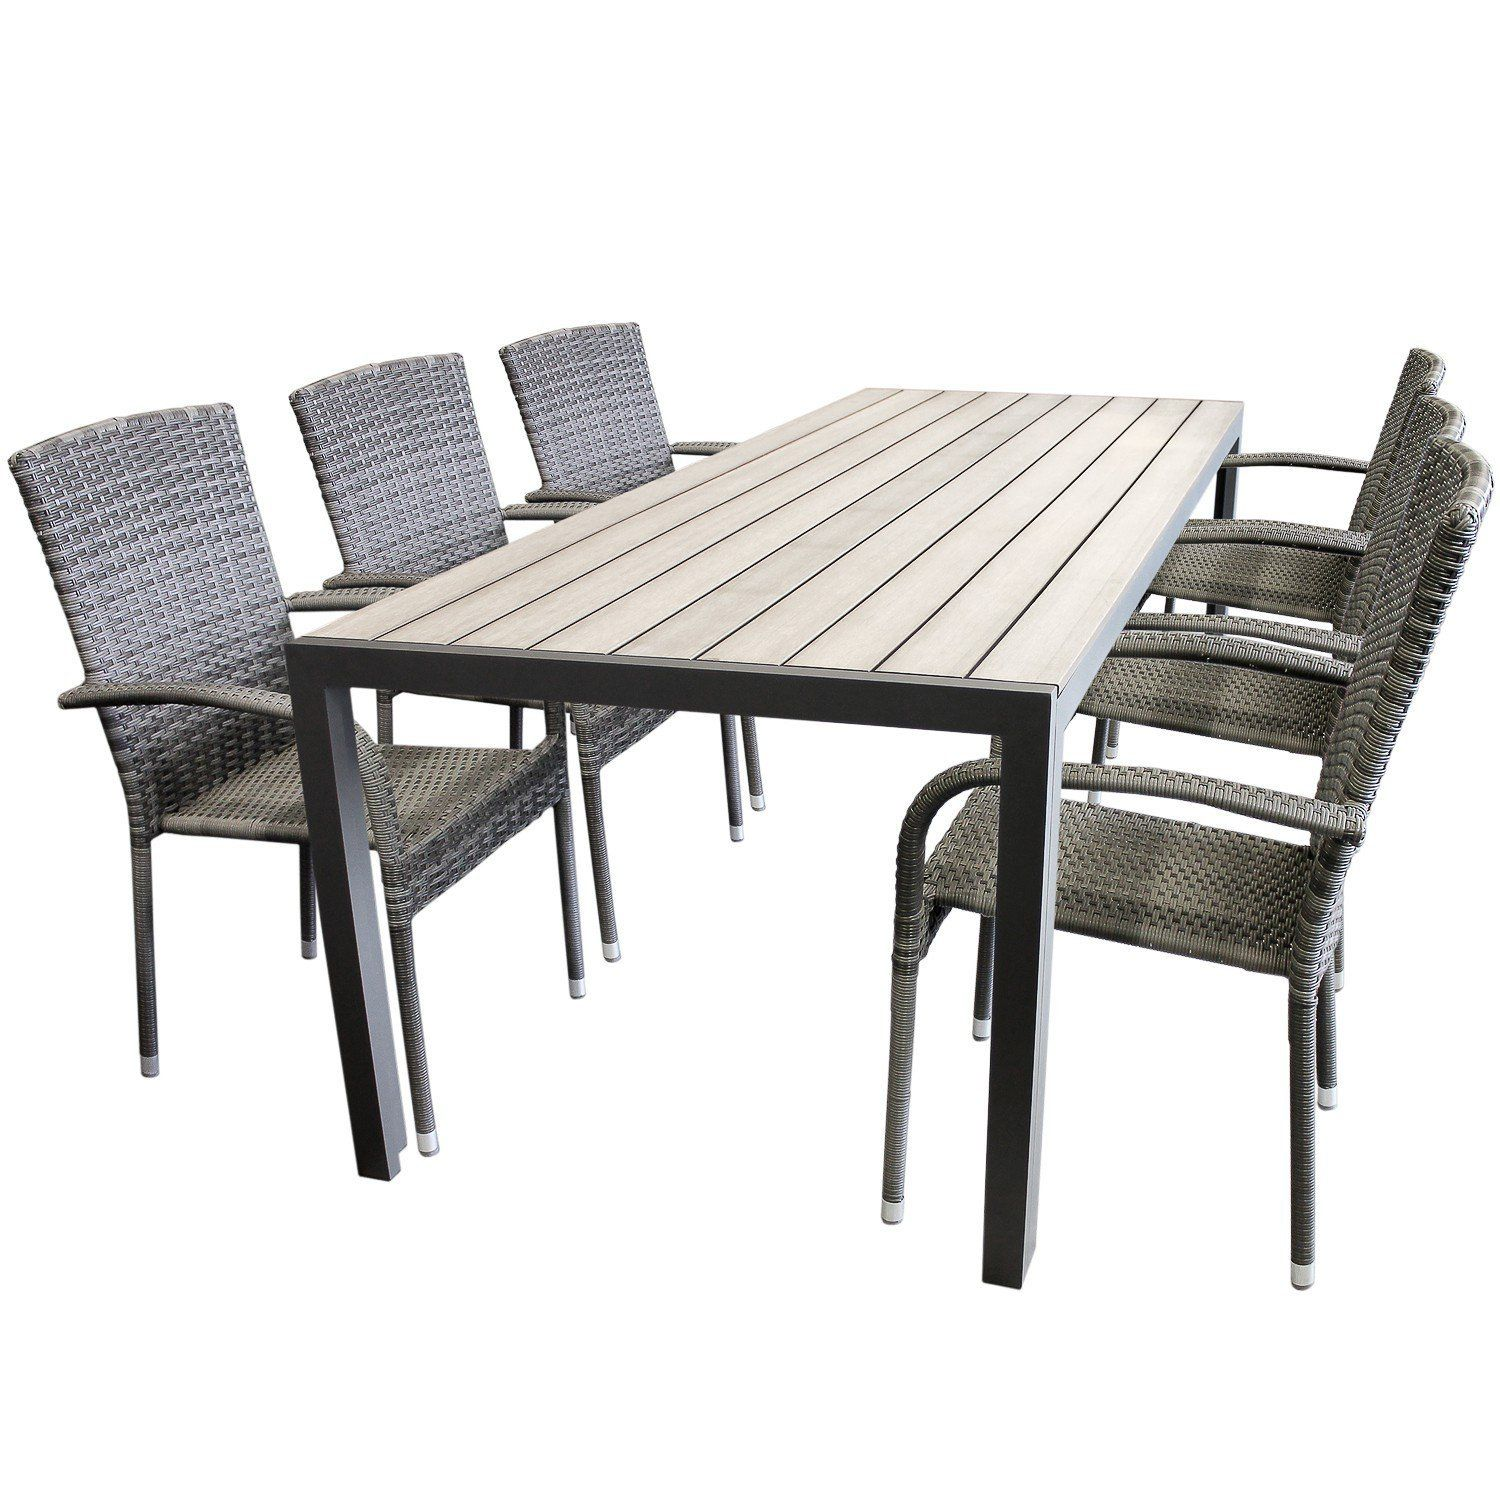 Non Wood Patio Furniture